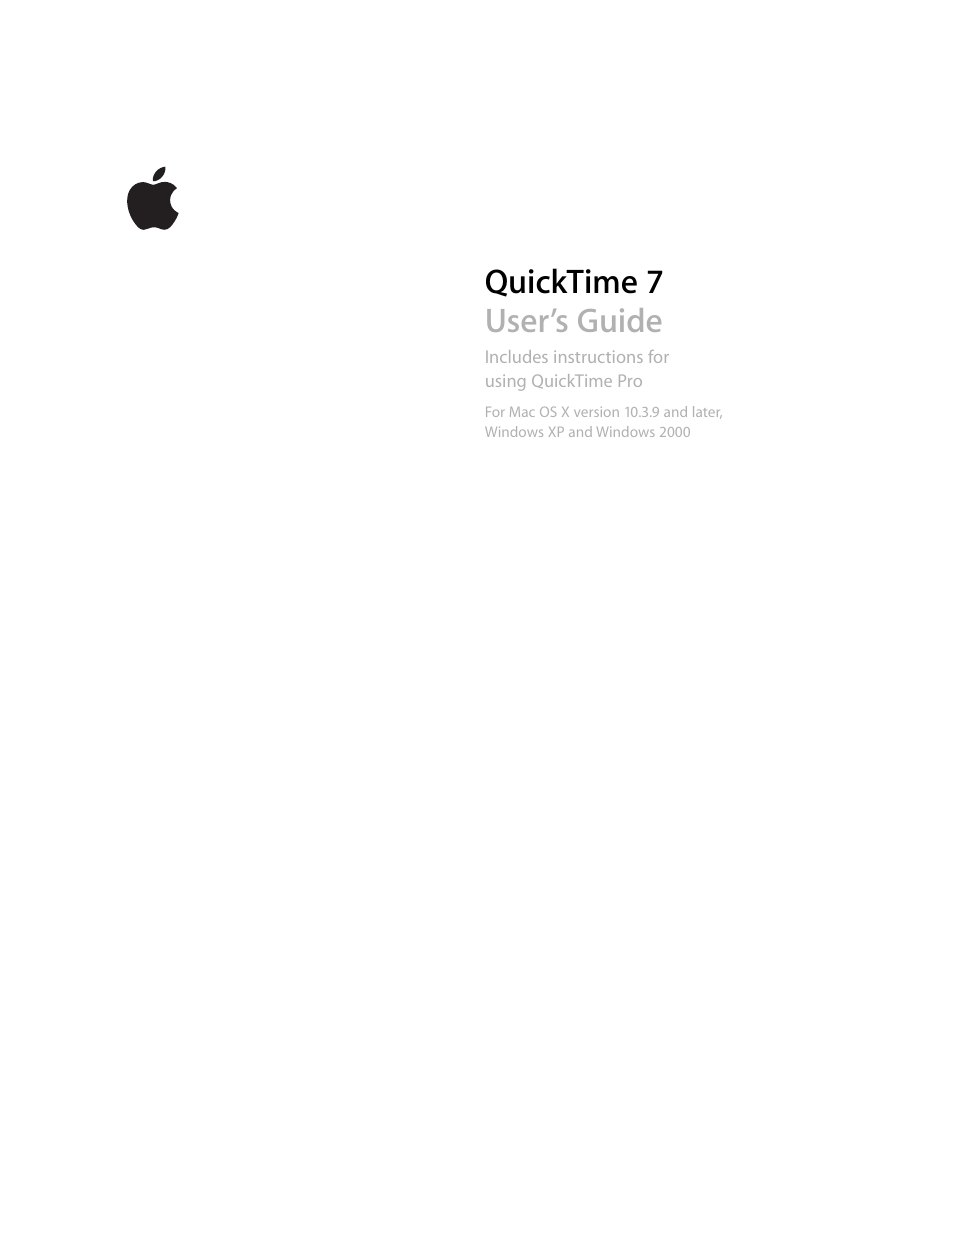 apple quicktime 7 user manual 62 pages rh manualsdir com Apple QuickTime Trailers Apple QuickTime Trailers